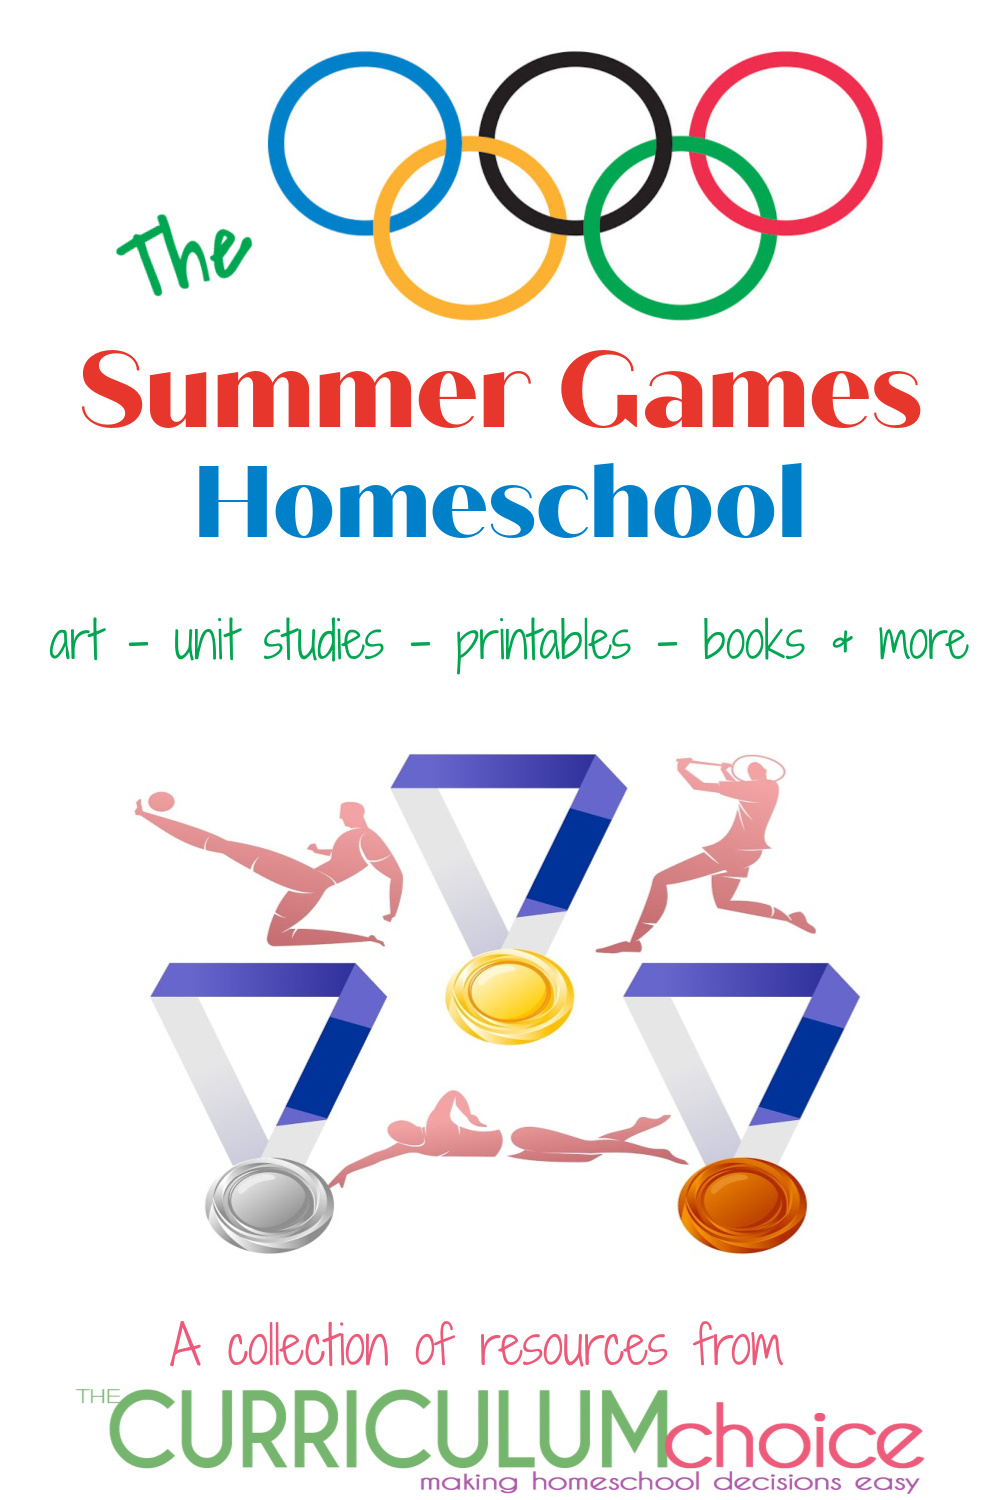 The Summer Games Homeschool - a collection of resources for learning about and celebrating the Summer Olympic Games. Art, unit studies, printables, books and more from The Curriculum Choice.